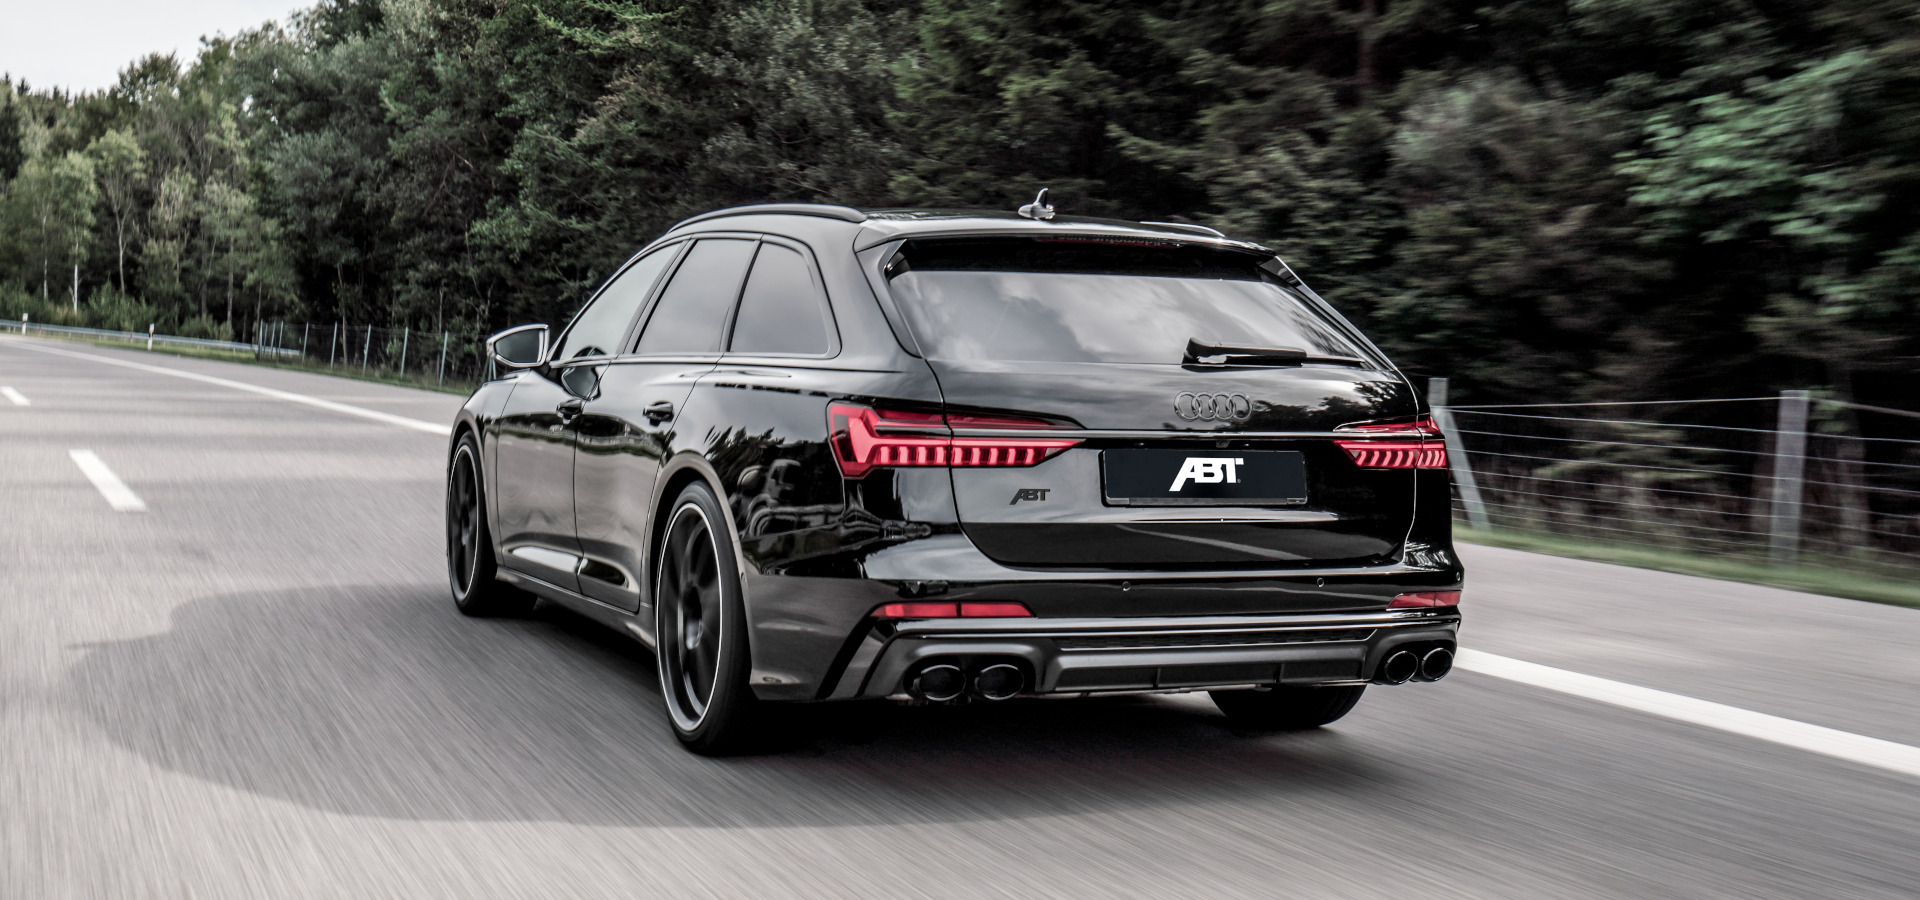 2020 Audi S6 Concept and Review